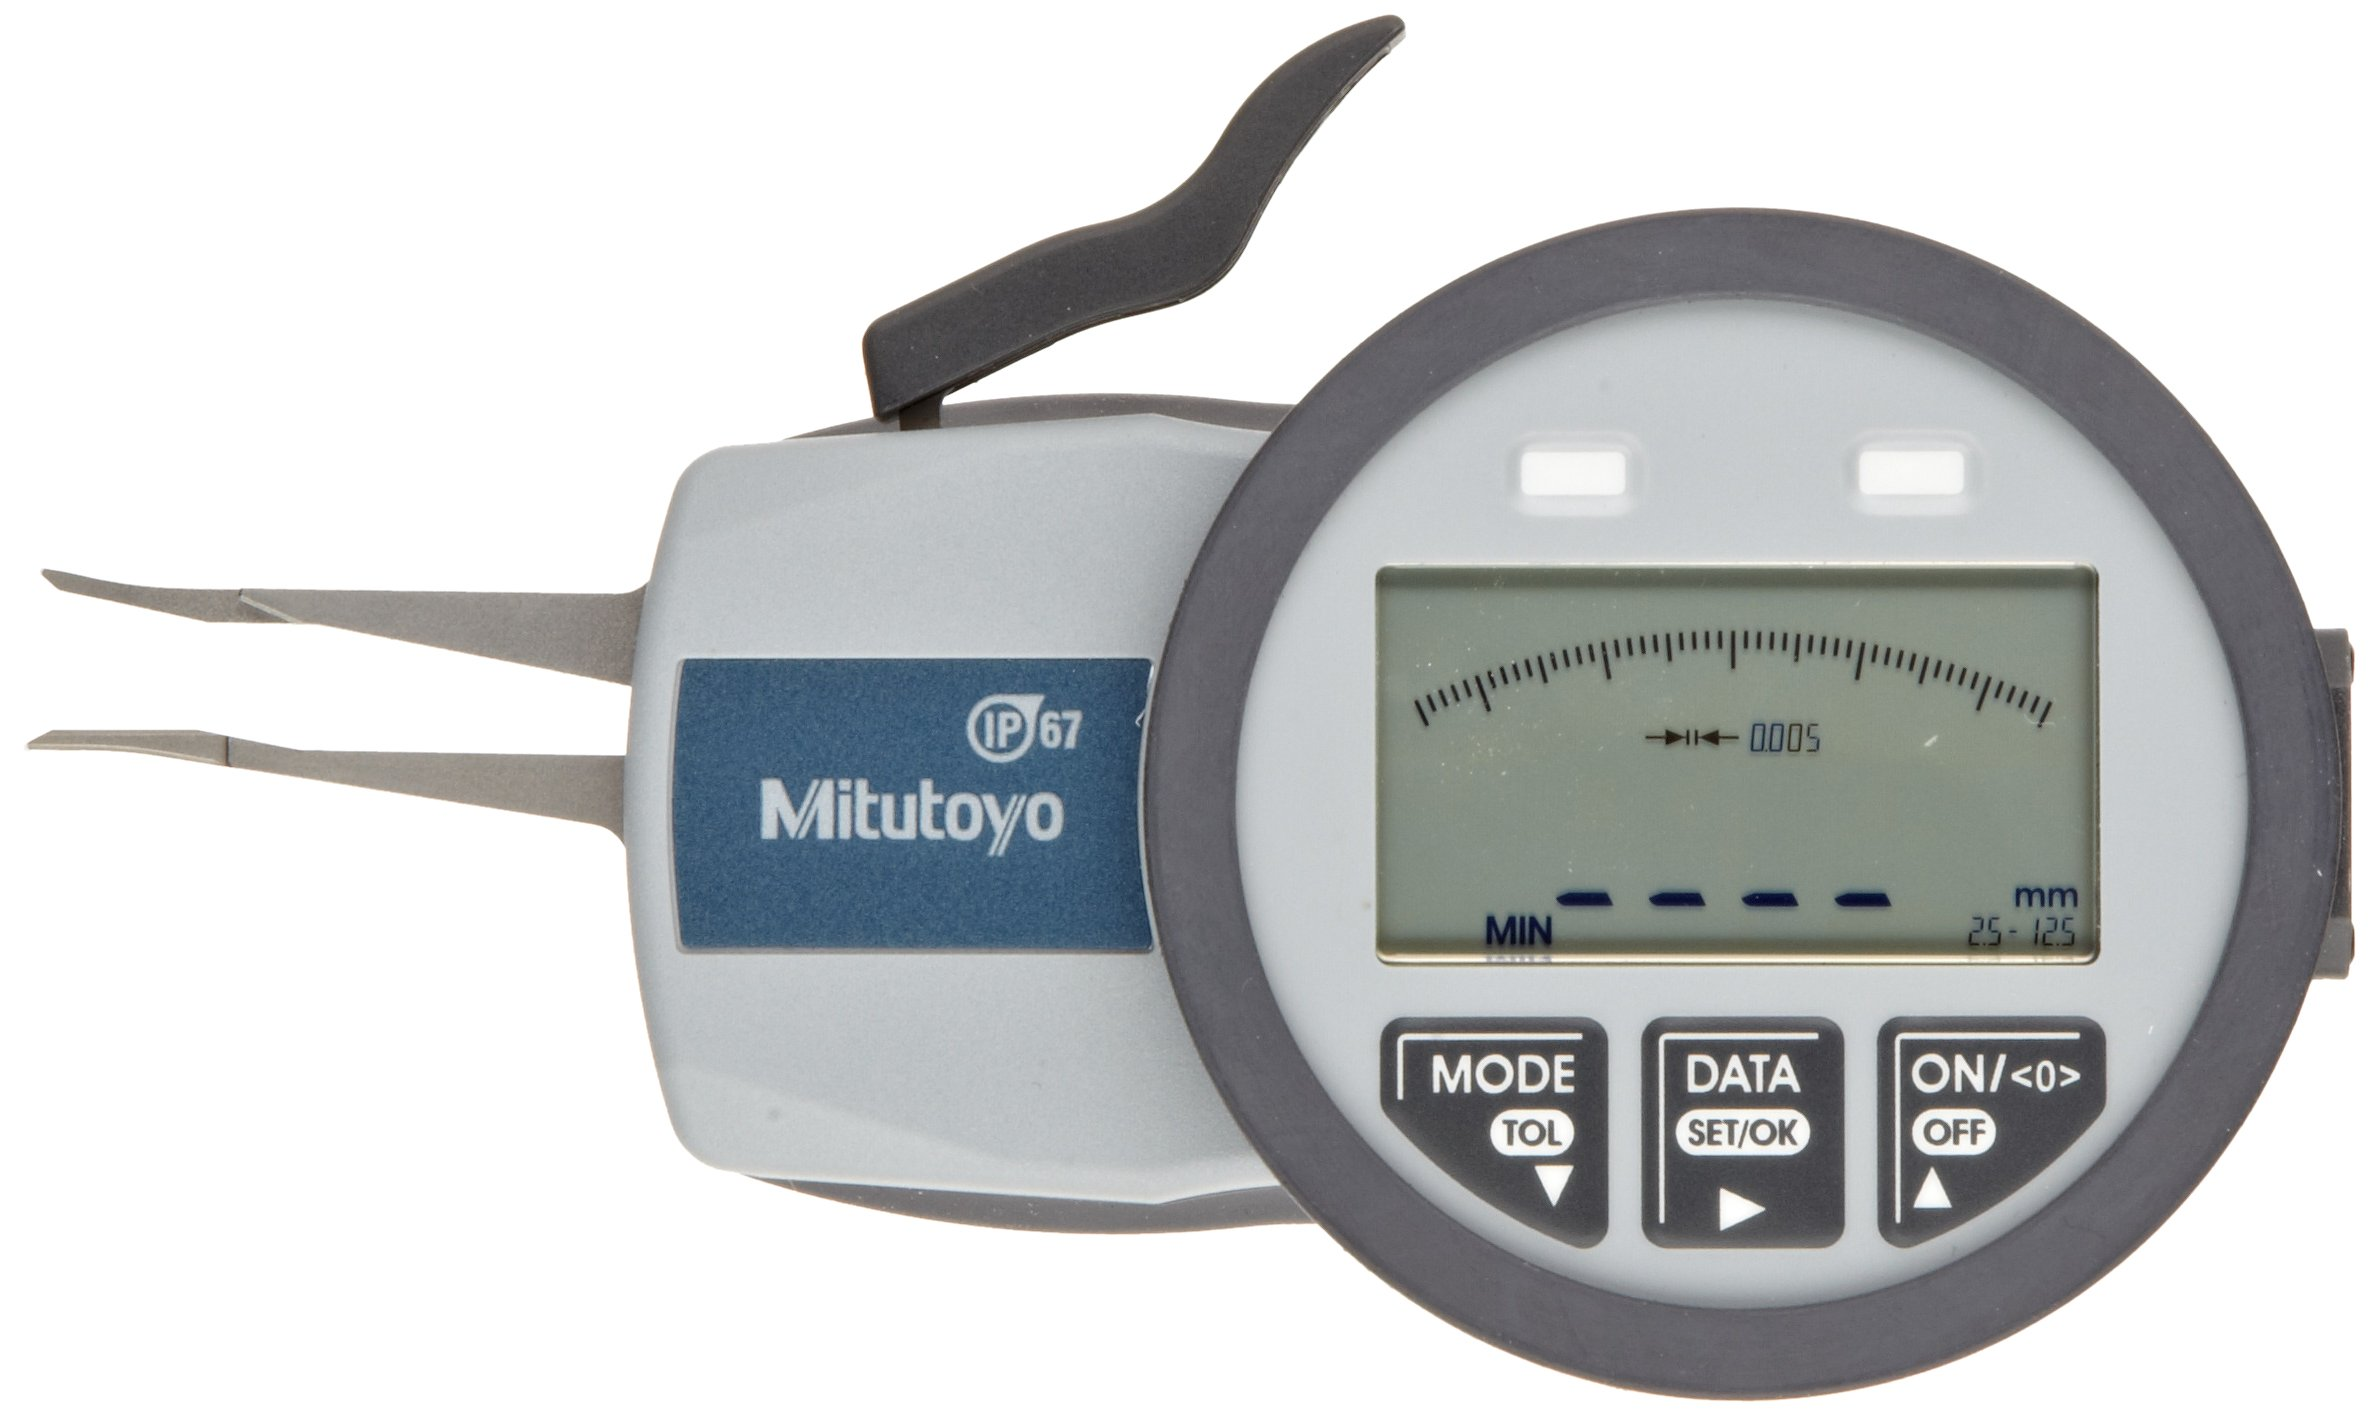 Mitutoyo 209-550 Caliper Gauge, Inch/Metric, Pointed Jaw, 0.1-0.49'' Range, +/-0.0008'' Accuracy, 0.0002'' Resolution, Meets IP63/IP67 Specifications